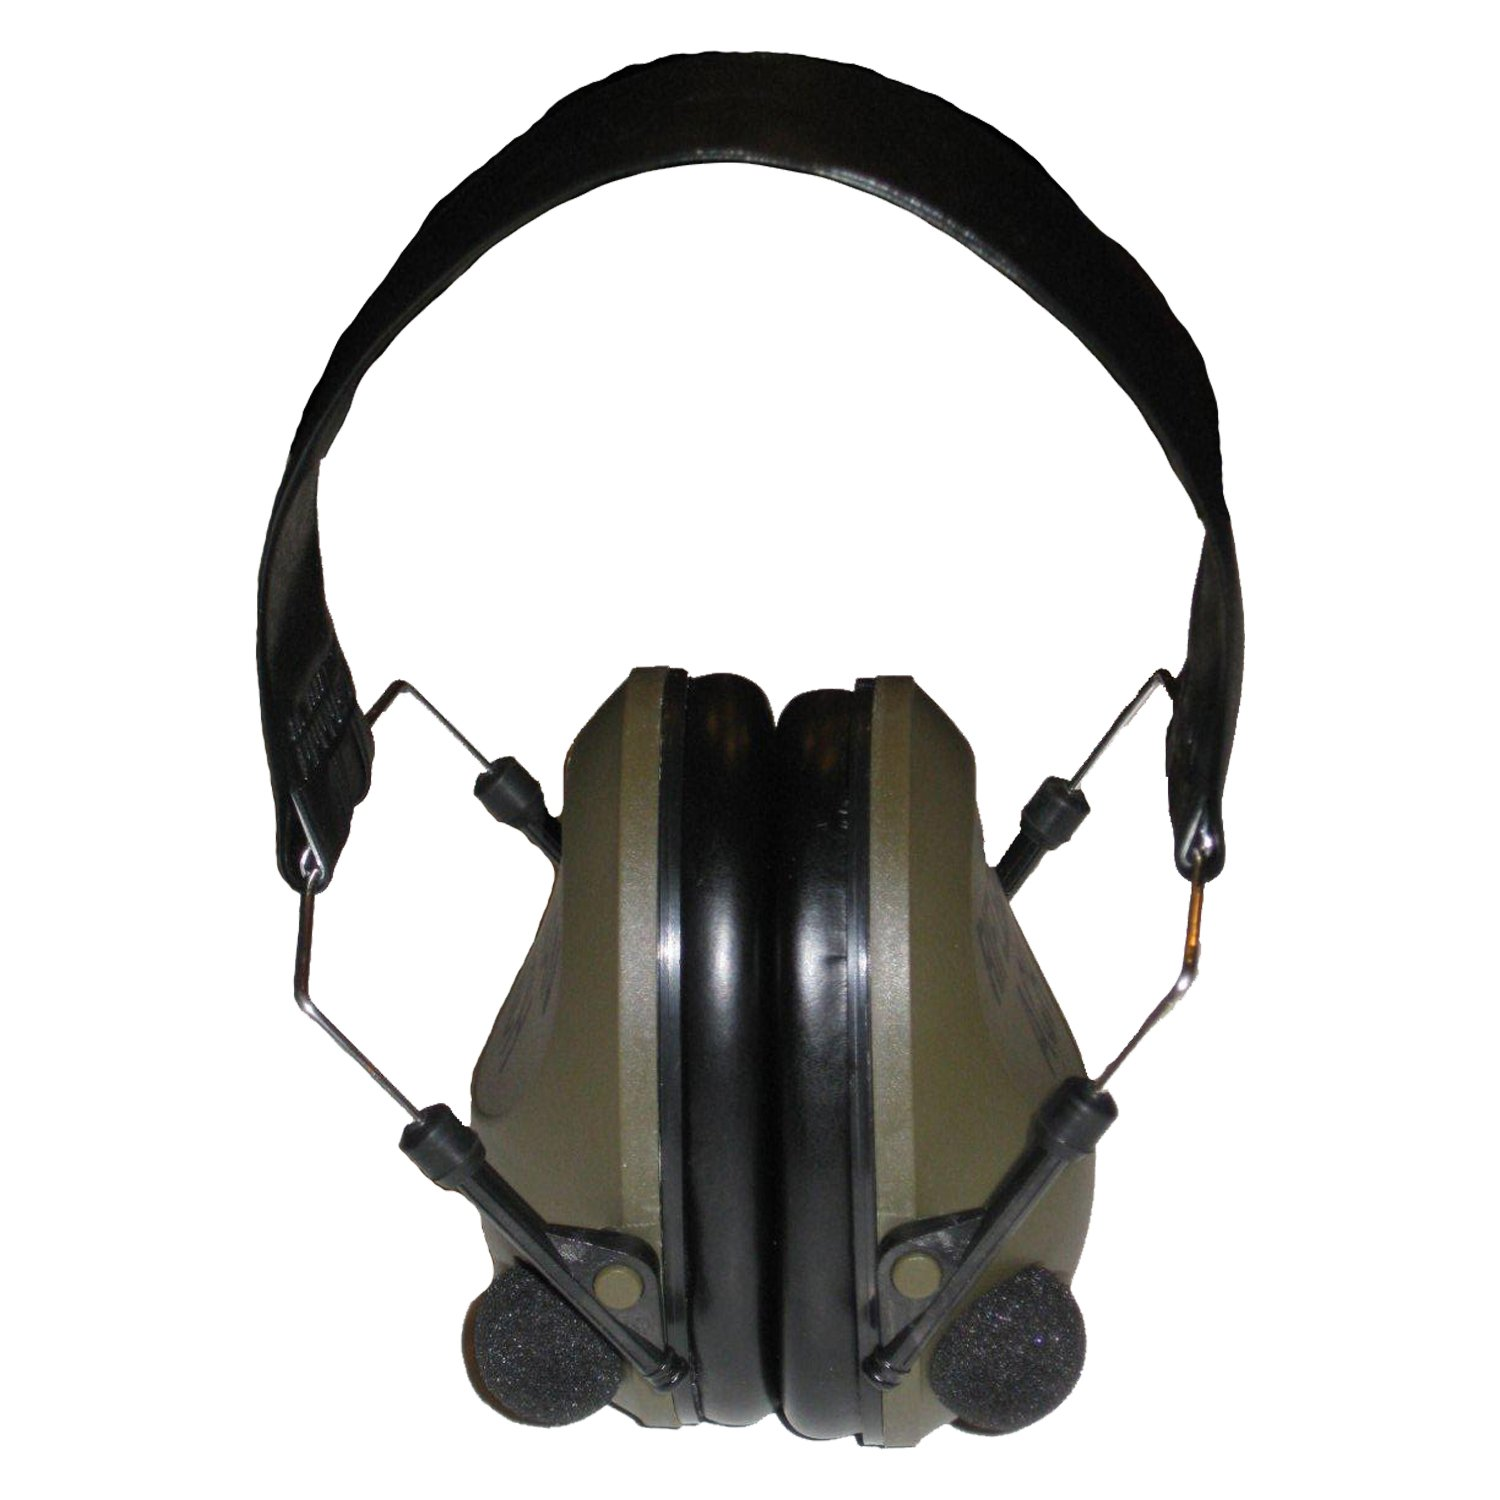 Rifleman Sound Amplification and Suppression Electronic Hearing Protection Earmuffs for Shooting & Hunting